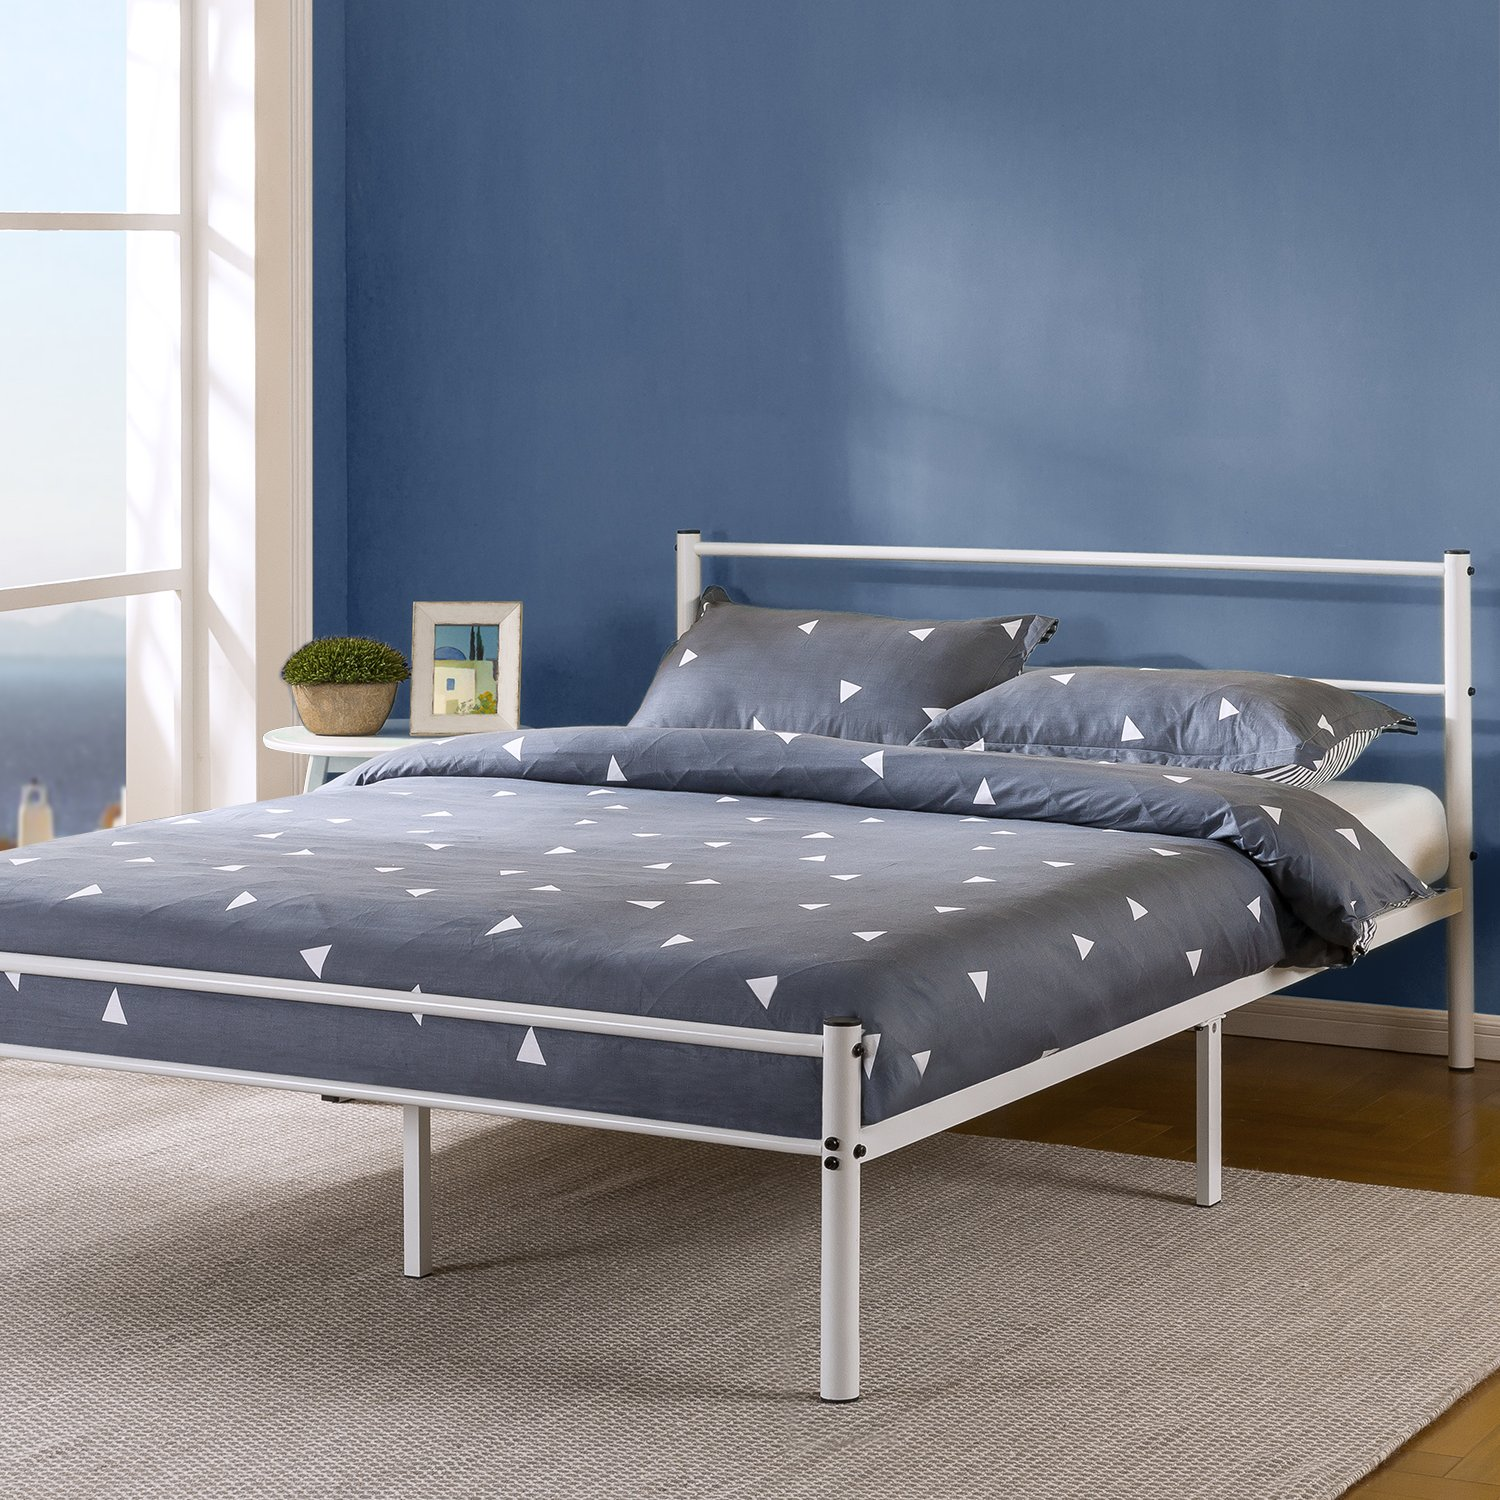 Zinus Geraldine 12 inch White Metal Platform Bed Frame with Headboard and Footboard / Premium Steel Slat Support / Mattress Foundation, Full by Zinus